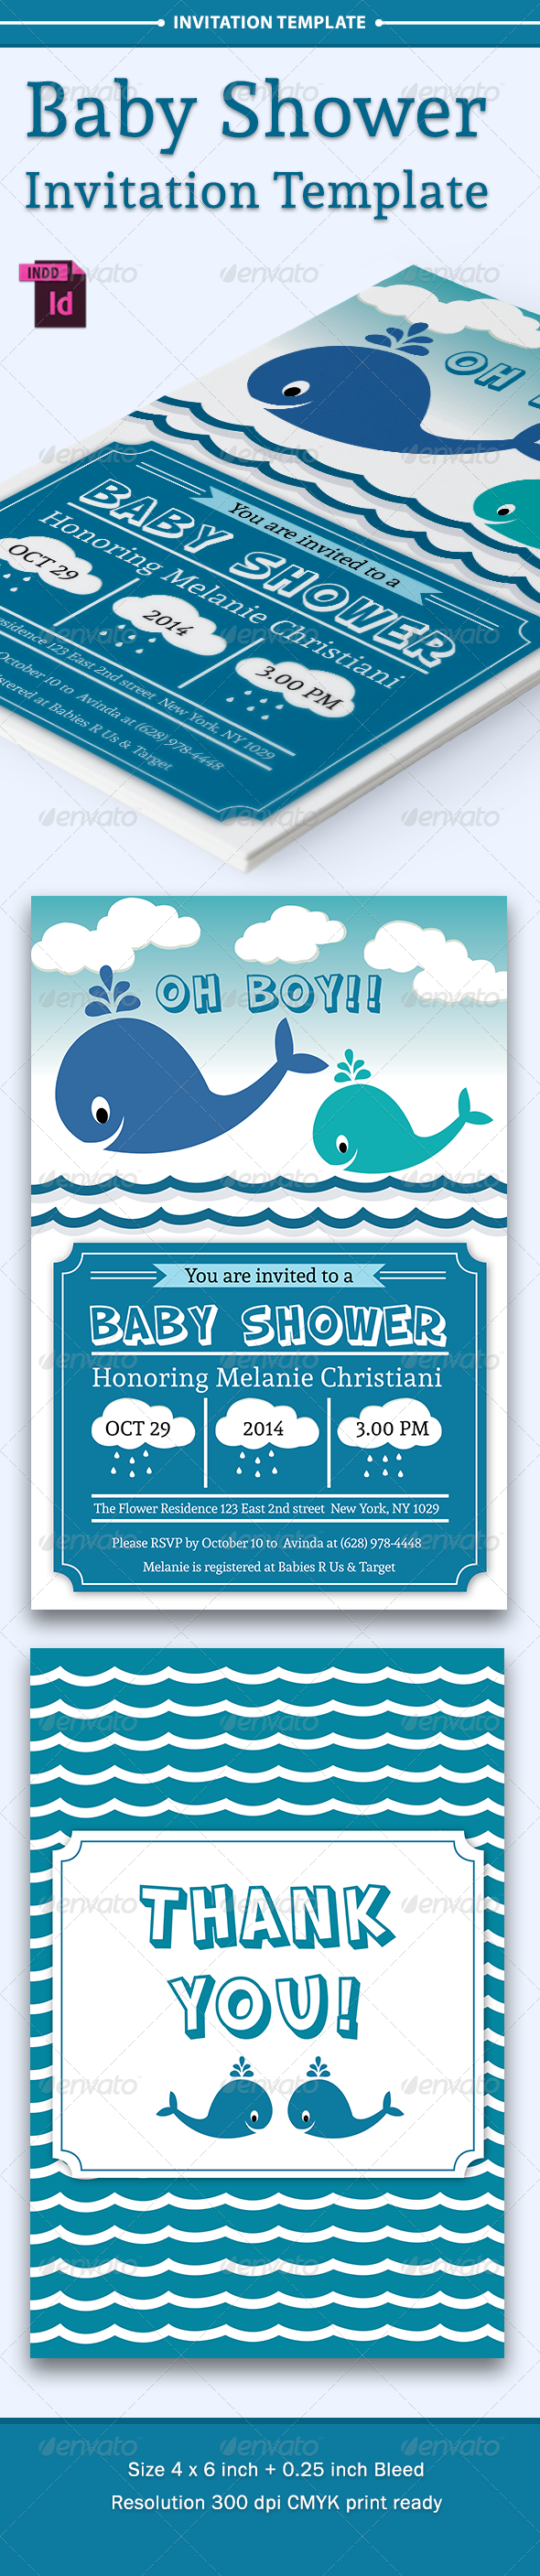 GraphicRiver Baby Shower Template Vol 6 8174855